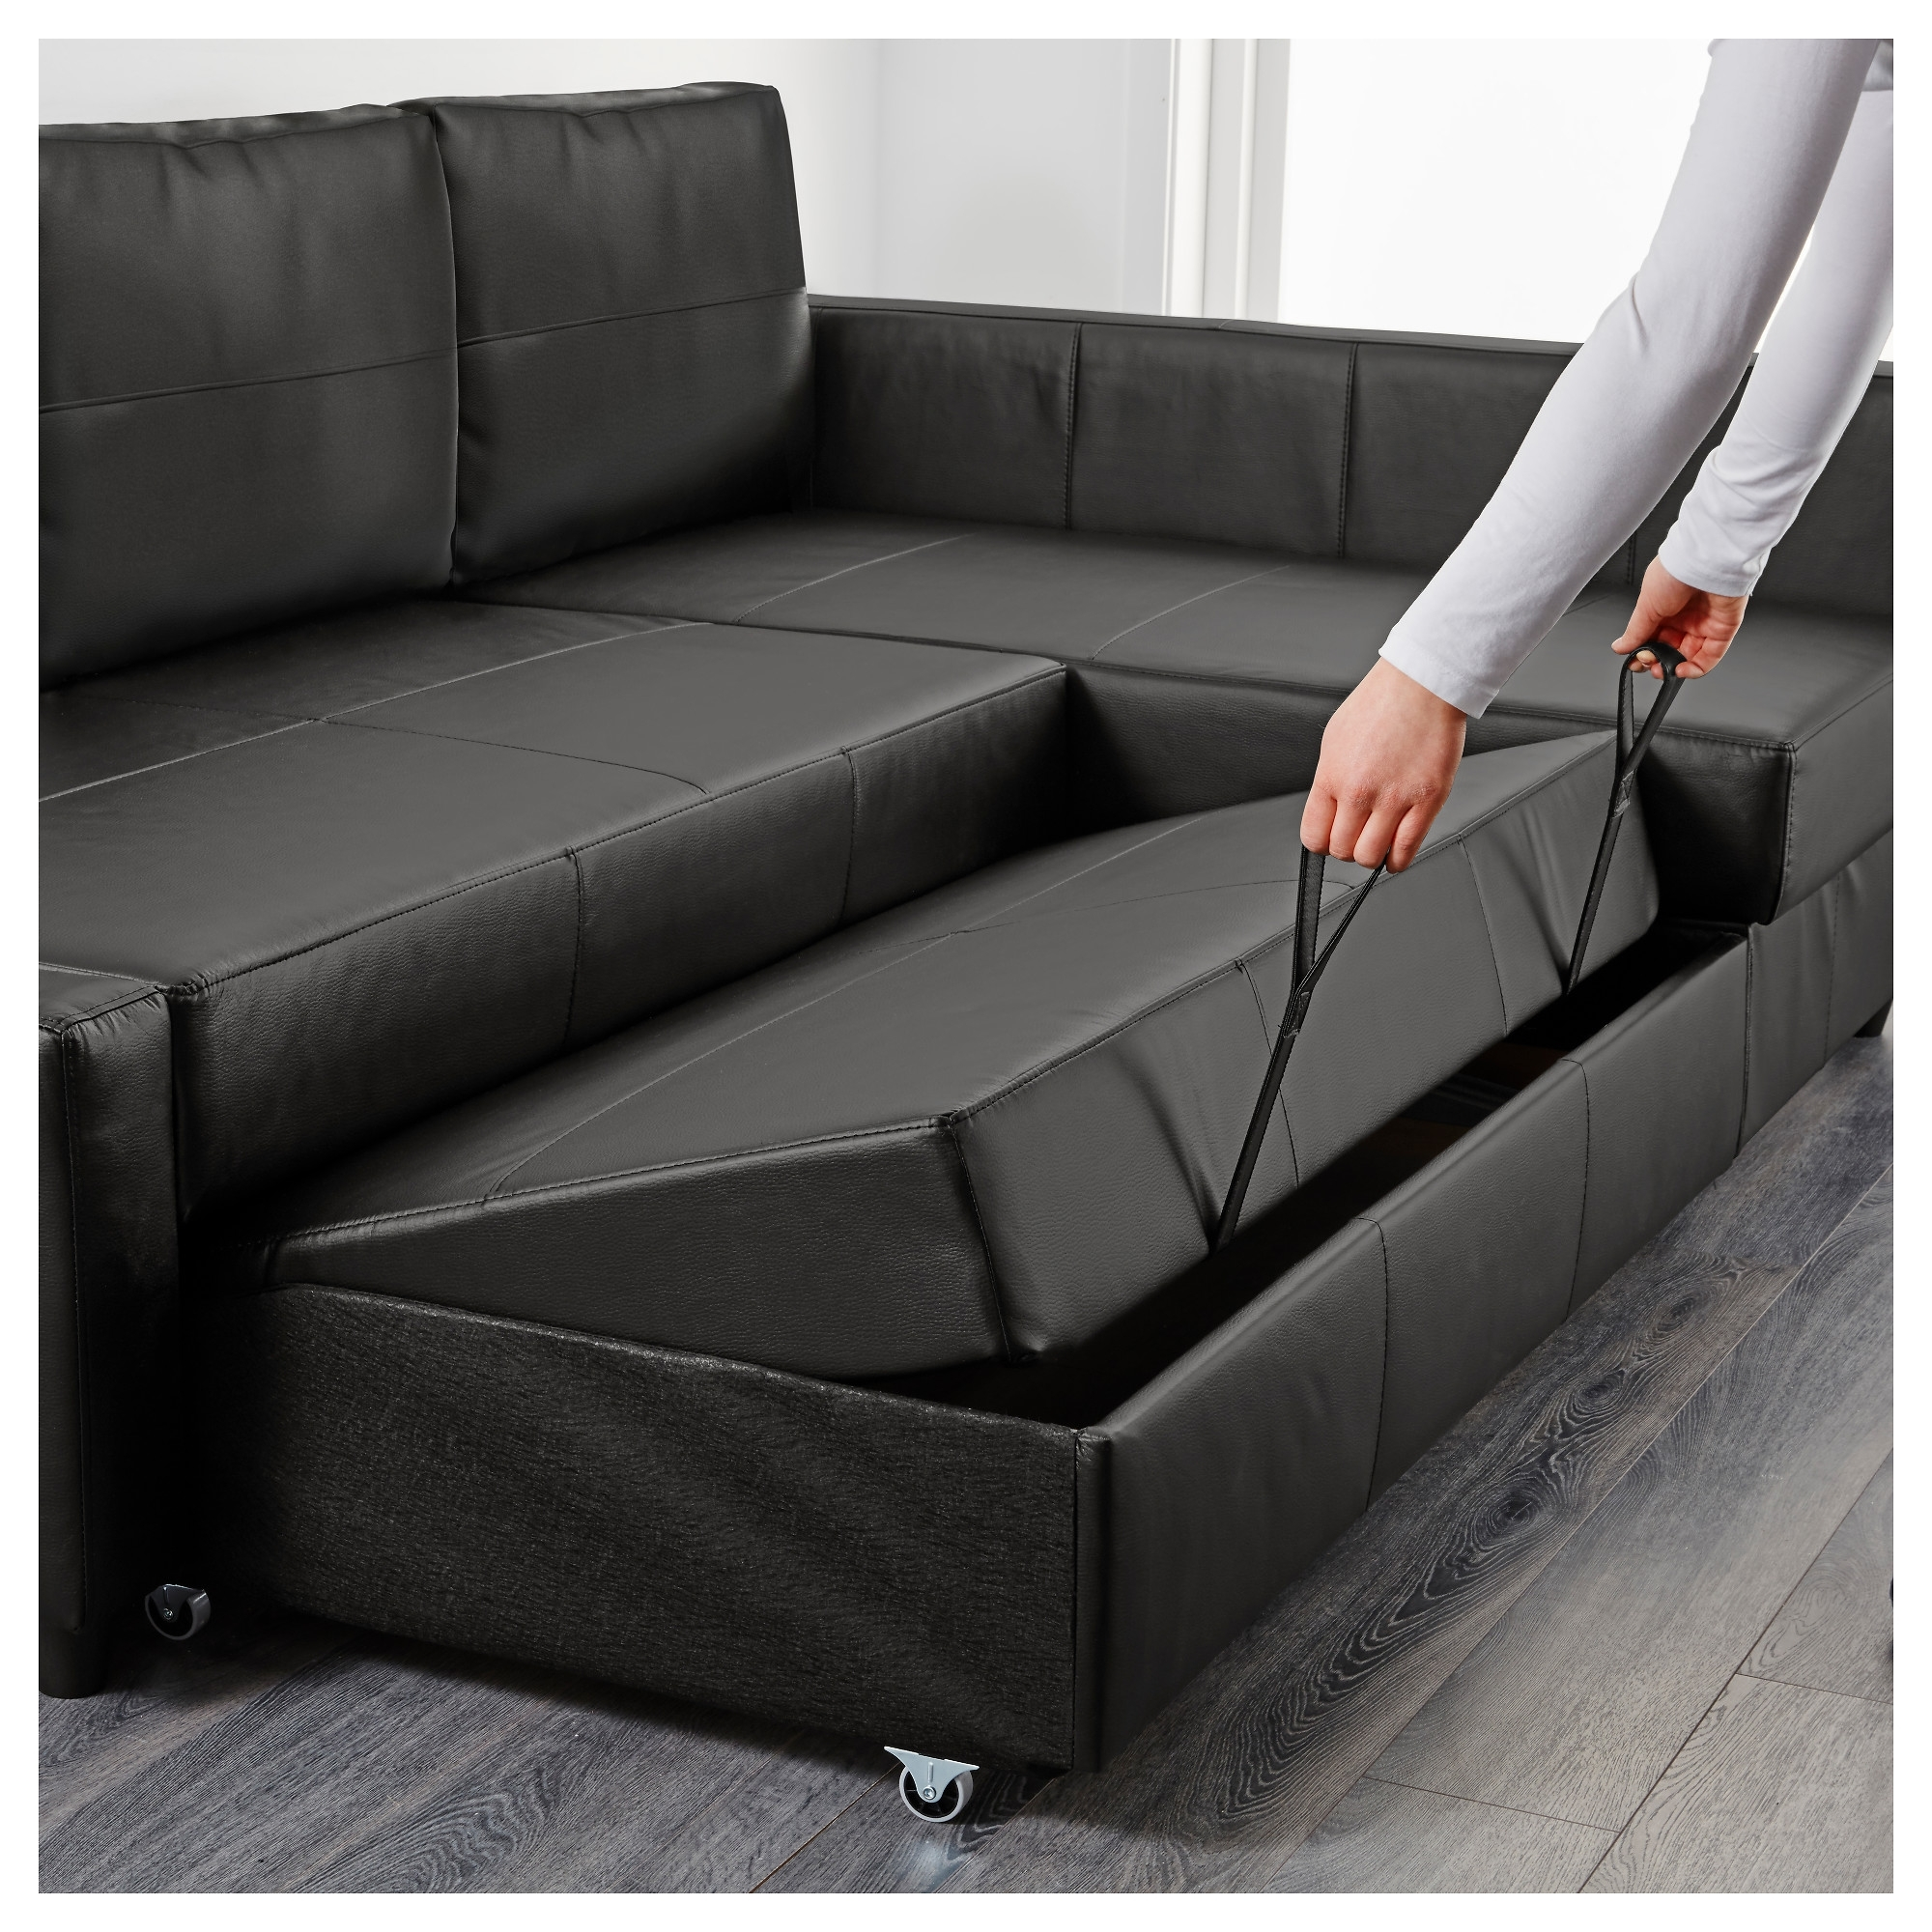 Leather Chaise Lounge Sofa Beds Regarding Fashionable Friheten Sleeper Sectional,3 Seat W/storage – Skiftebo Dark Gray (View 15 of 15)